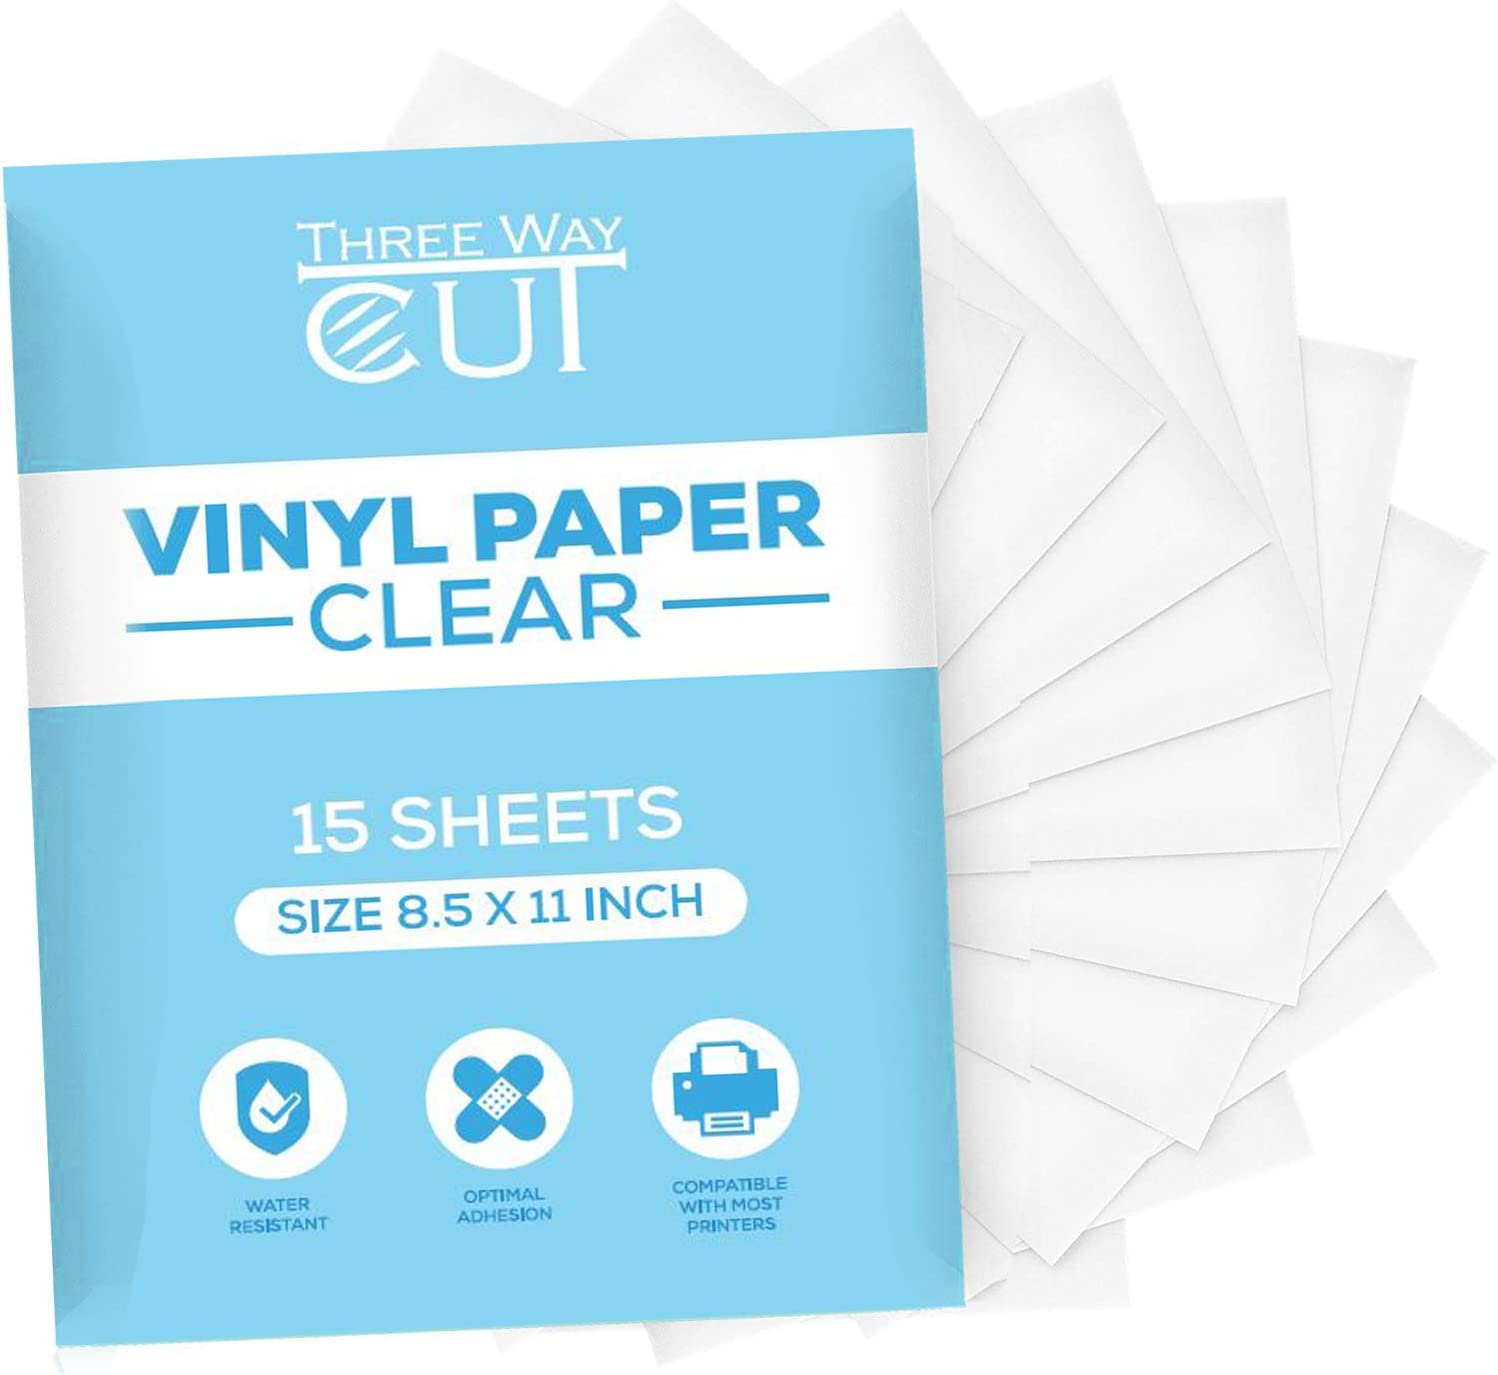 Printable Vinyl Sticker Paper Frosty Clear for Inkjet Printer 15 Sheets Transparent, Decal Paper Tear & Scratch Resistant Quick Ink Dry, Cricut Sticker Paper for Making Labels & Crafts